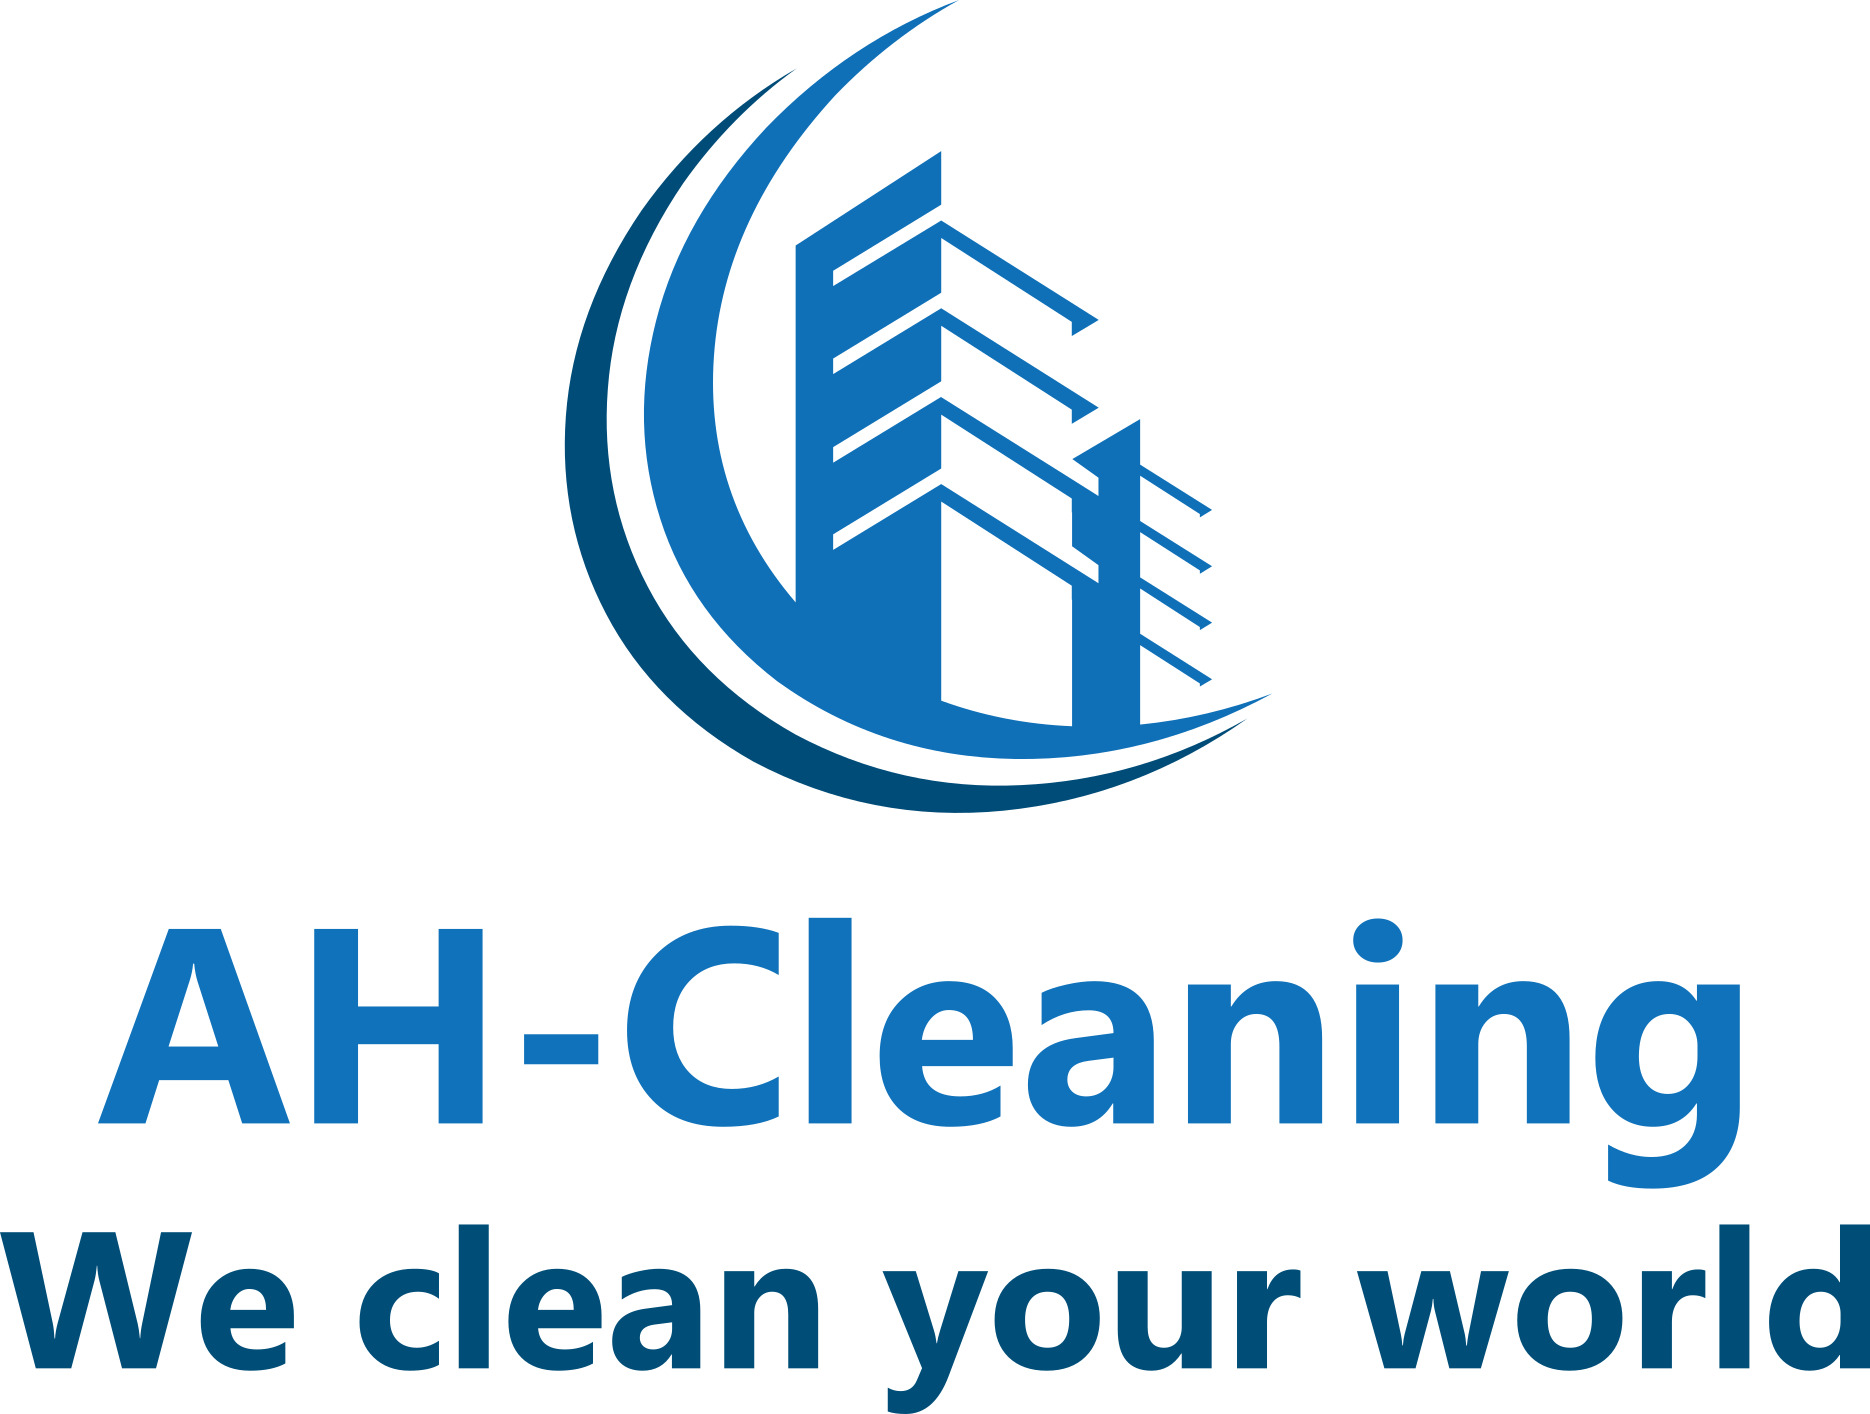 Ah-cleaning